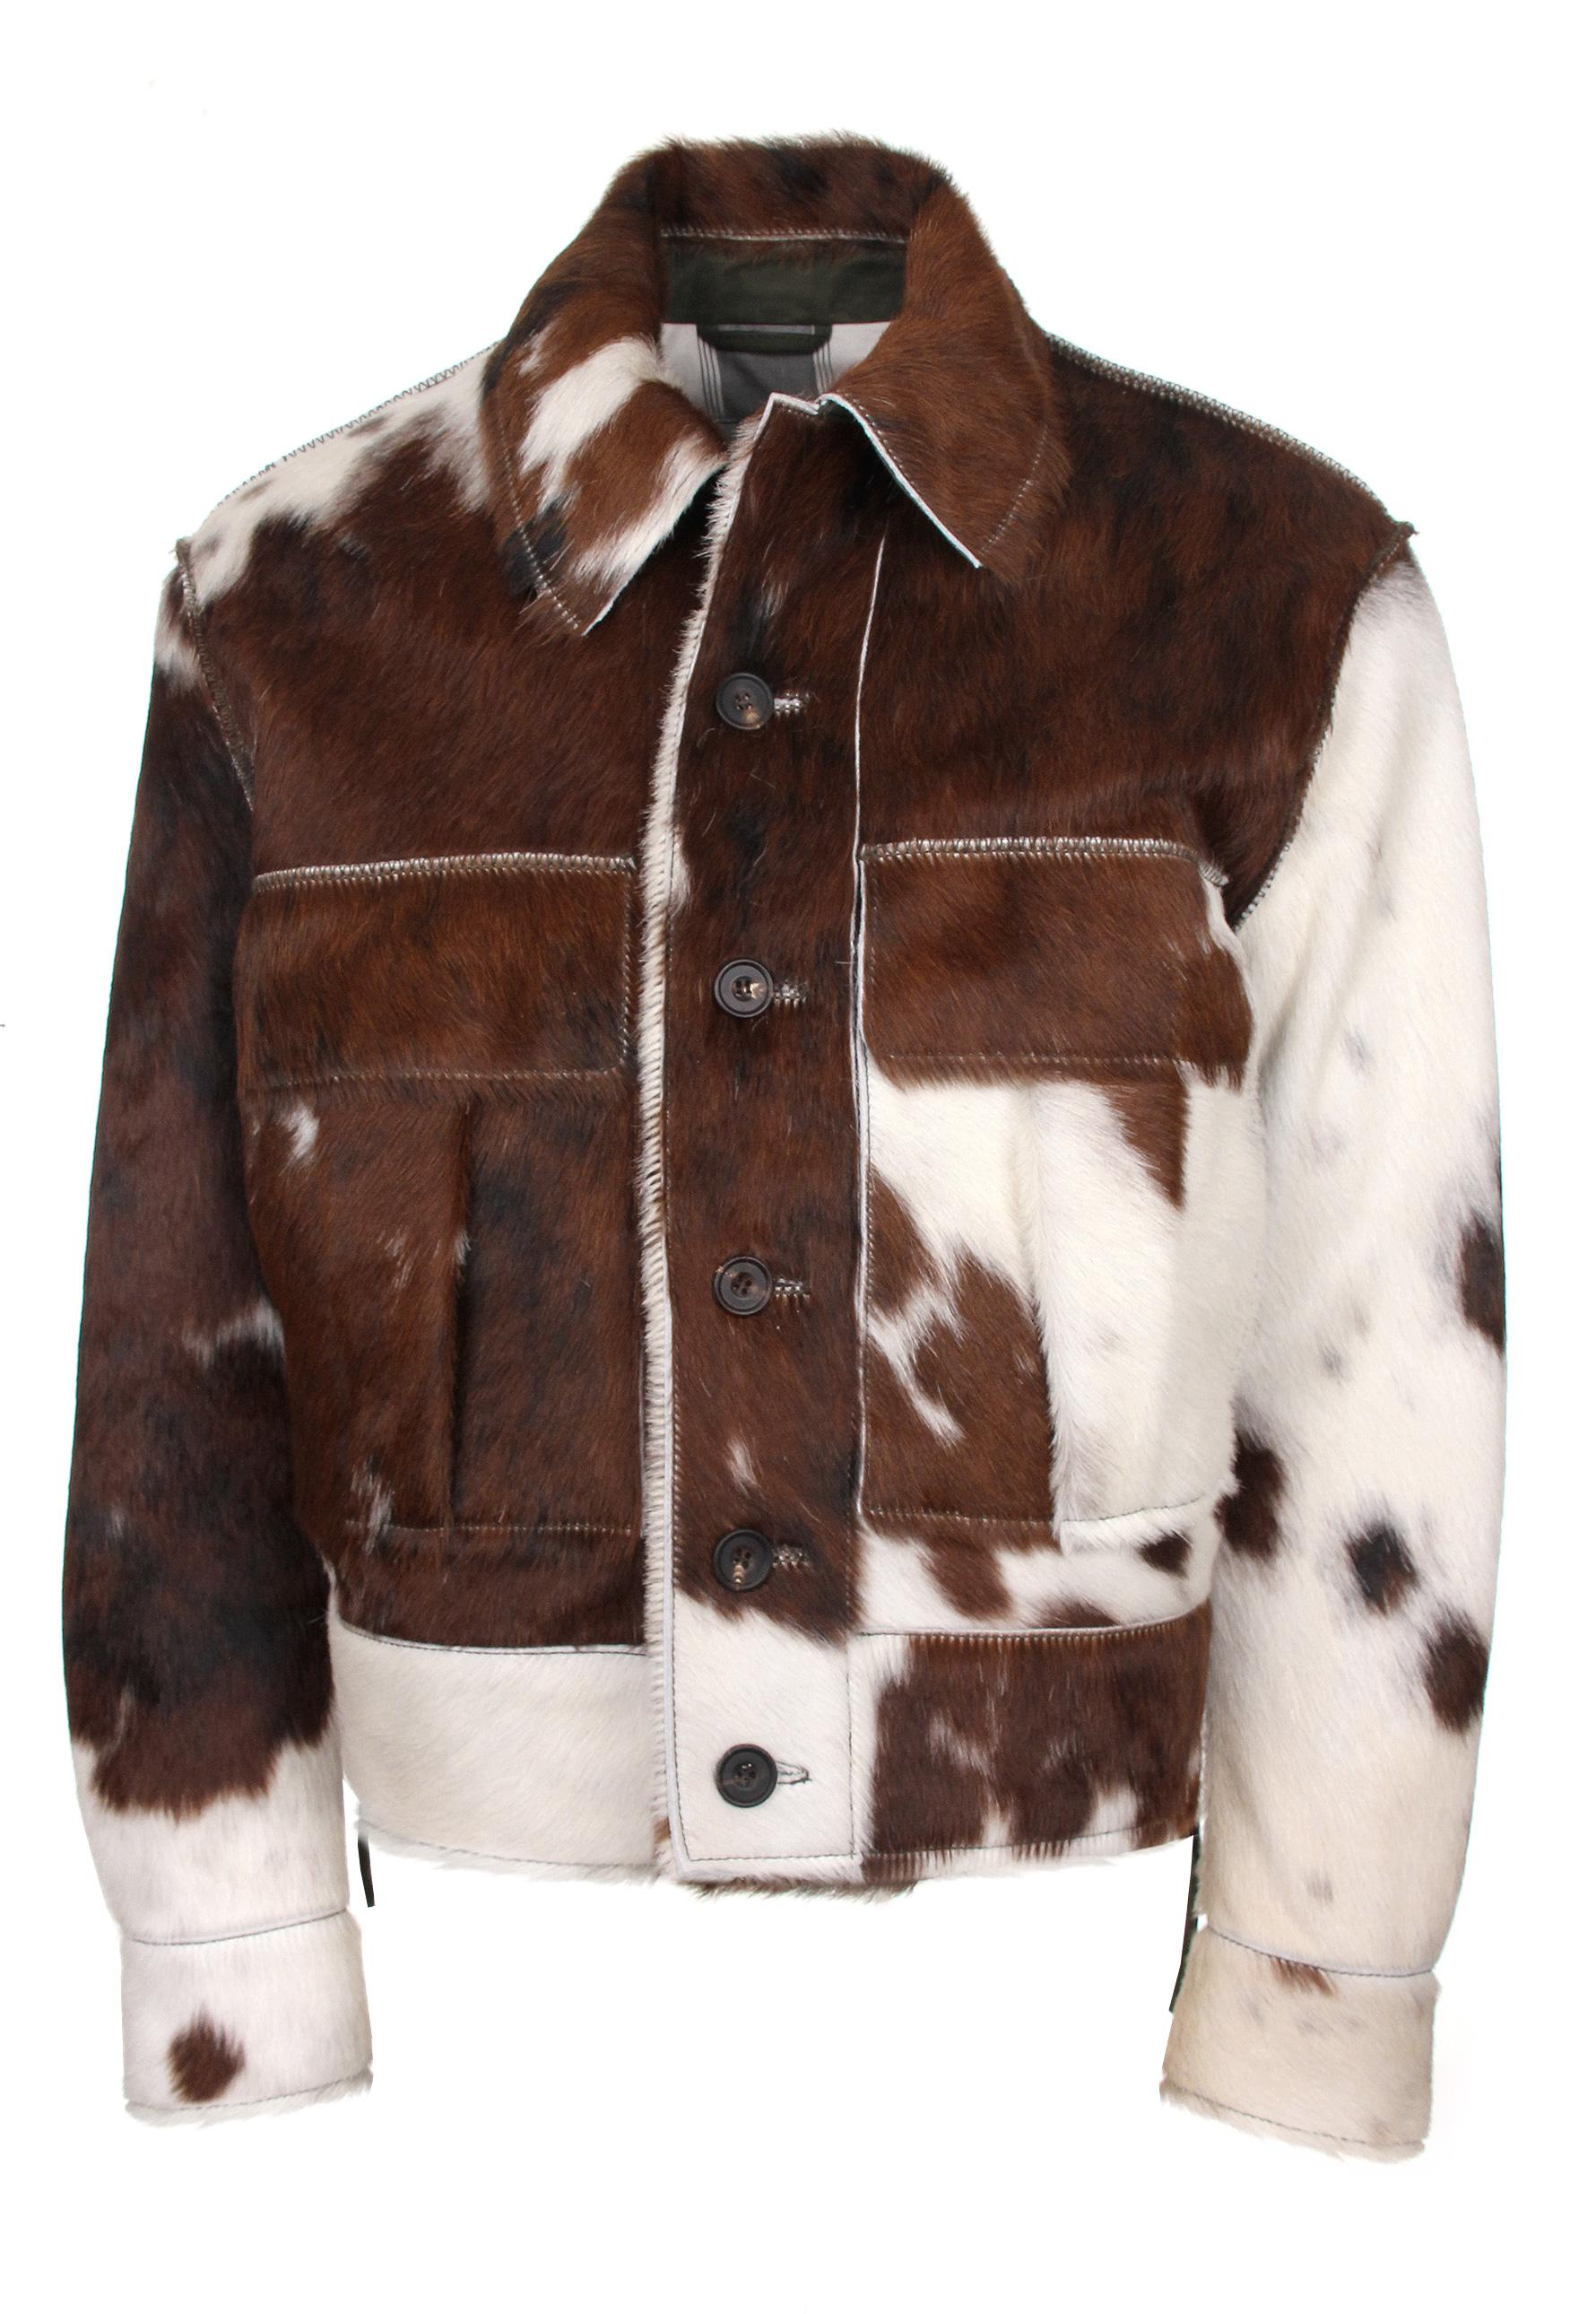 Lyst - Vivienne Westwood Cowskin Leather Thrasher Jacket